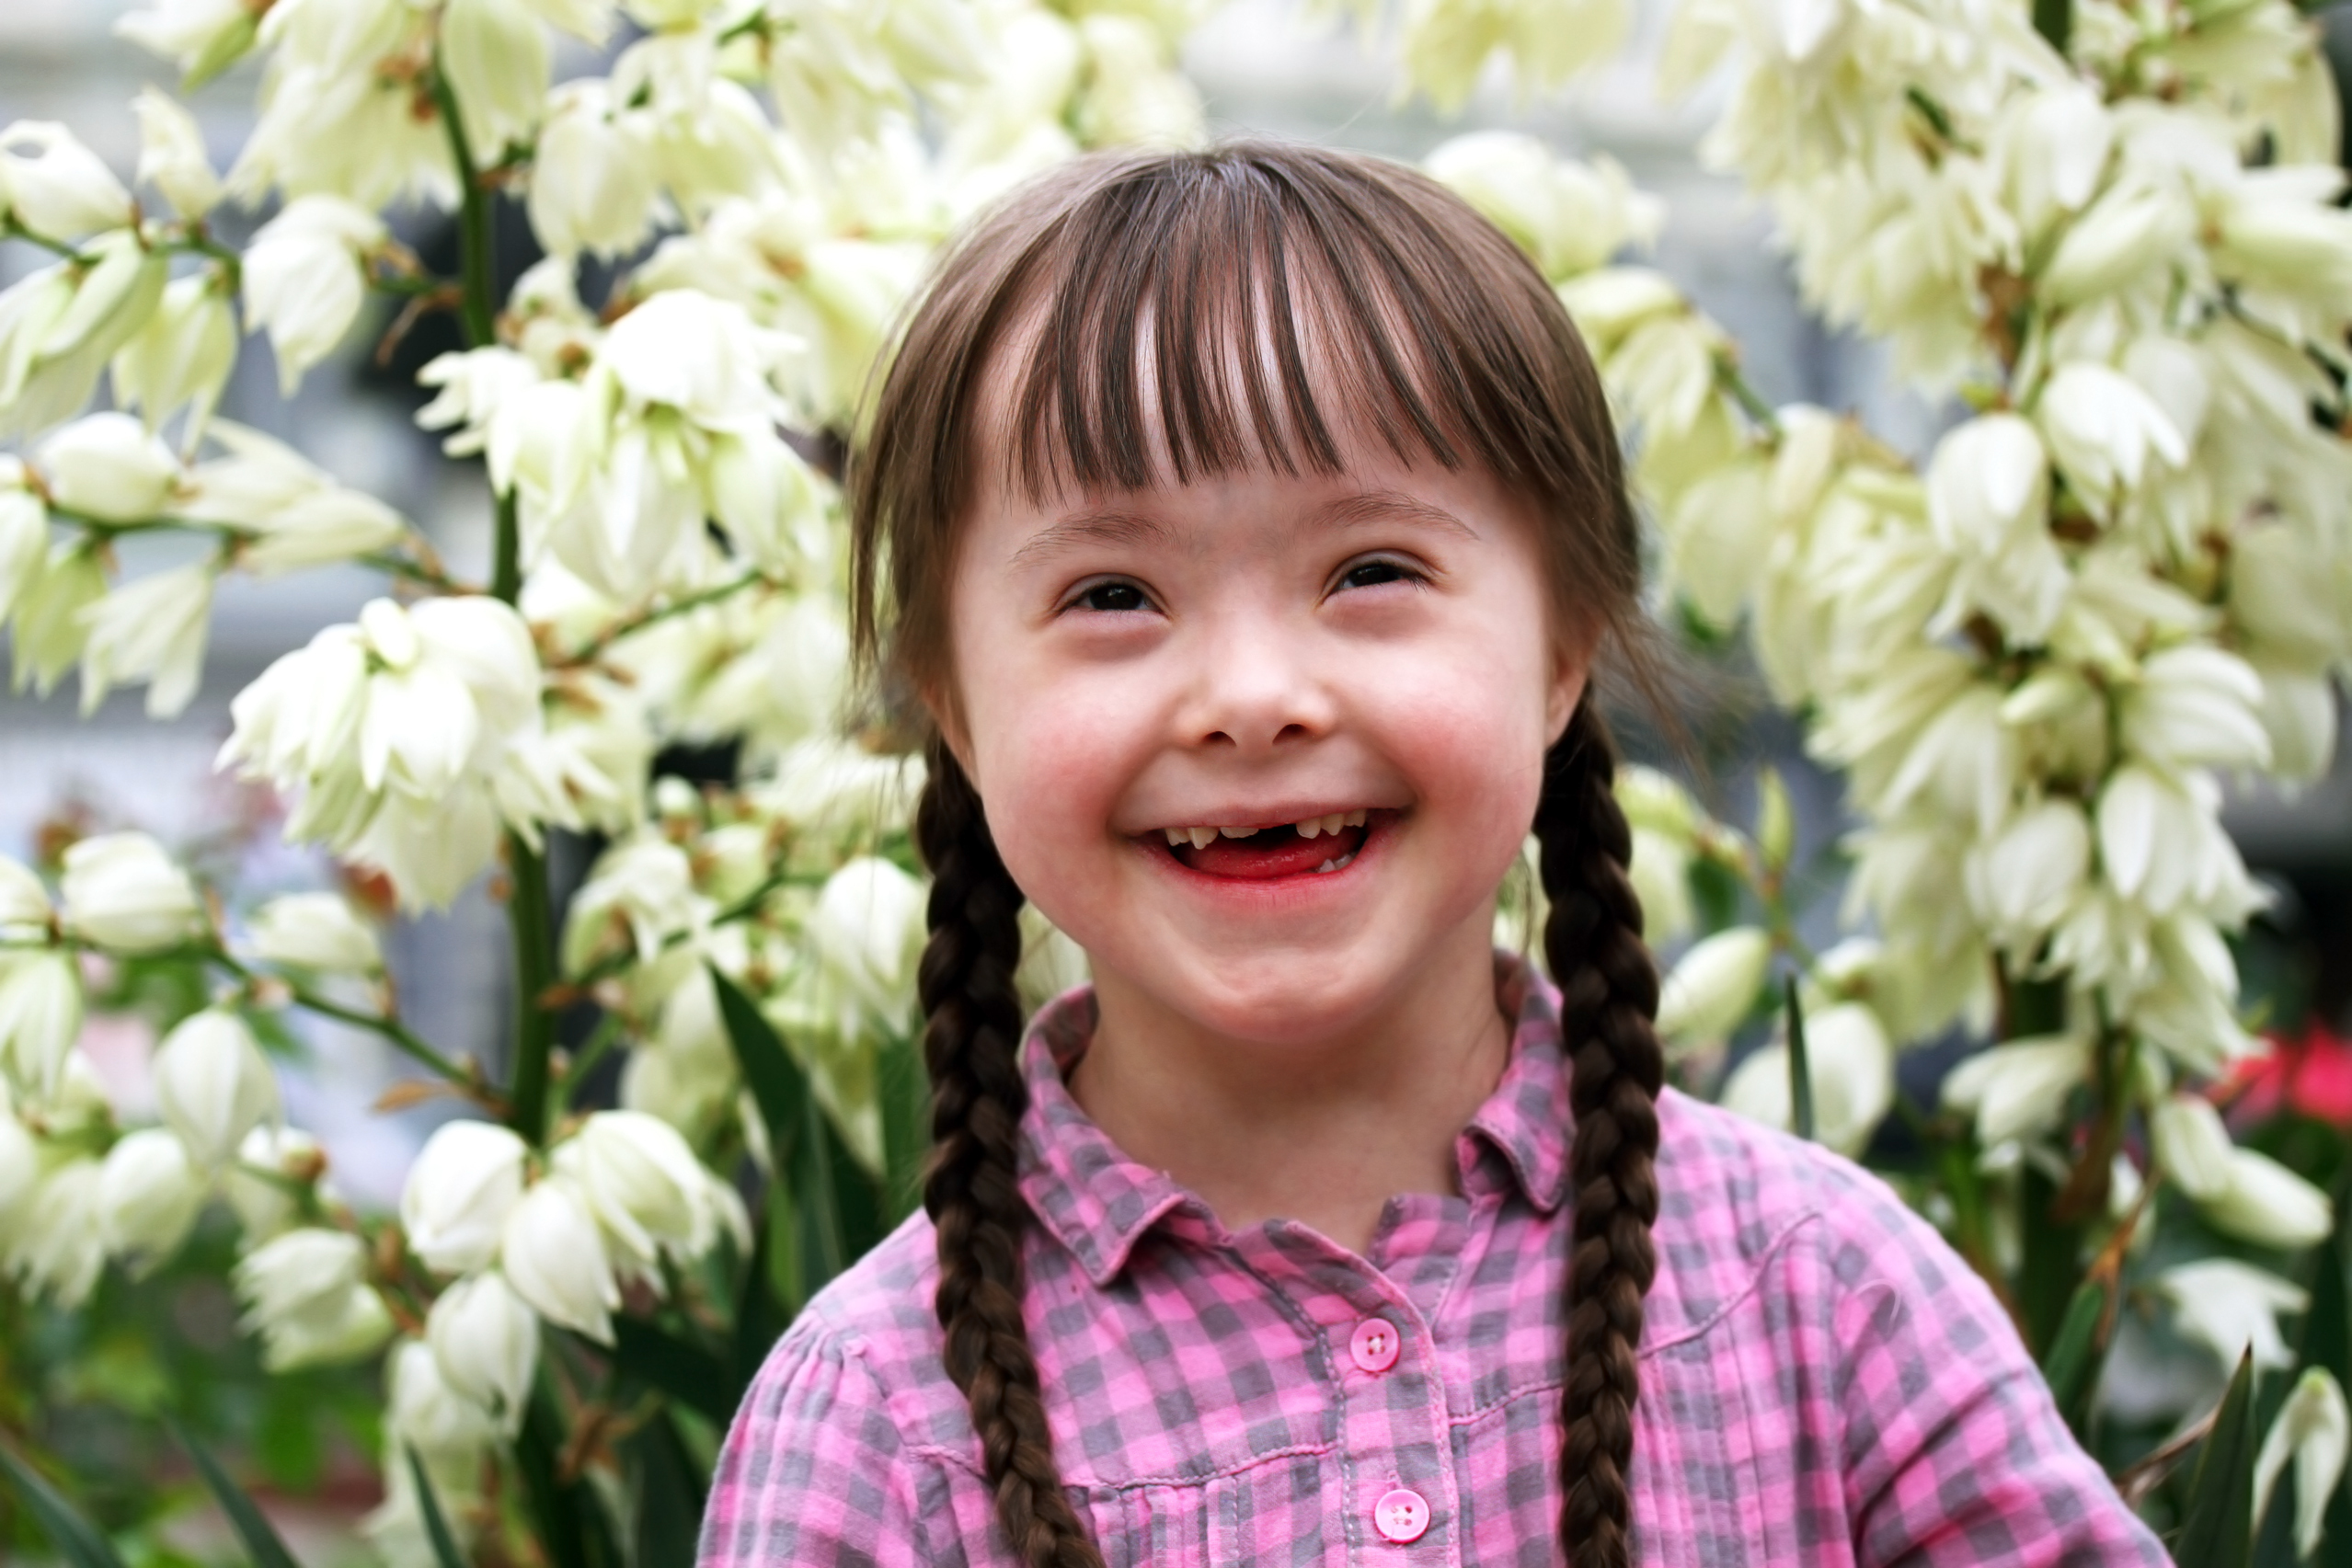 downs syndrome Down syndrome is a condition in which extra genetic material causes delays in the way a child develops, both physically and mentally.